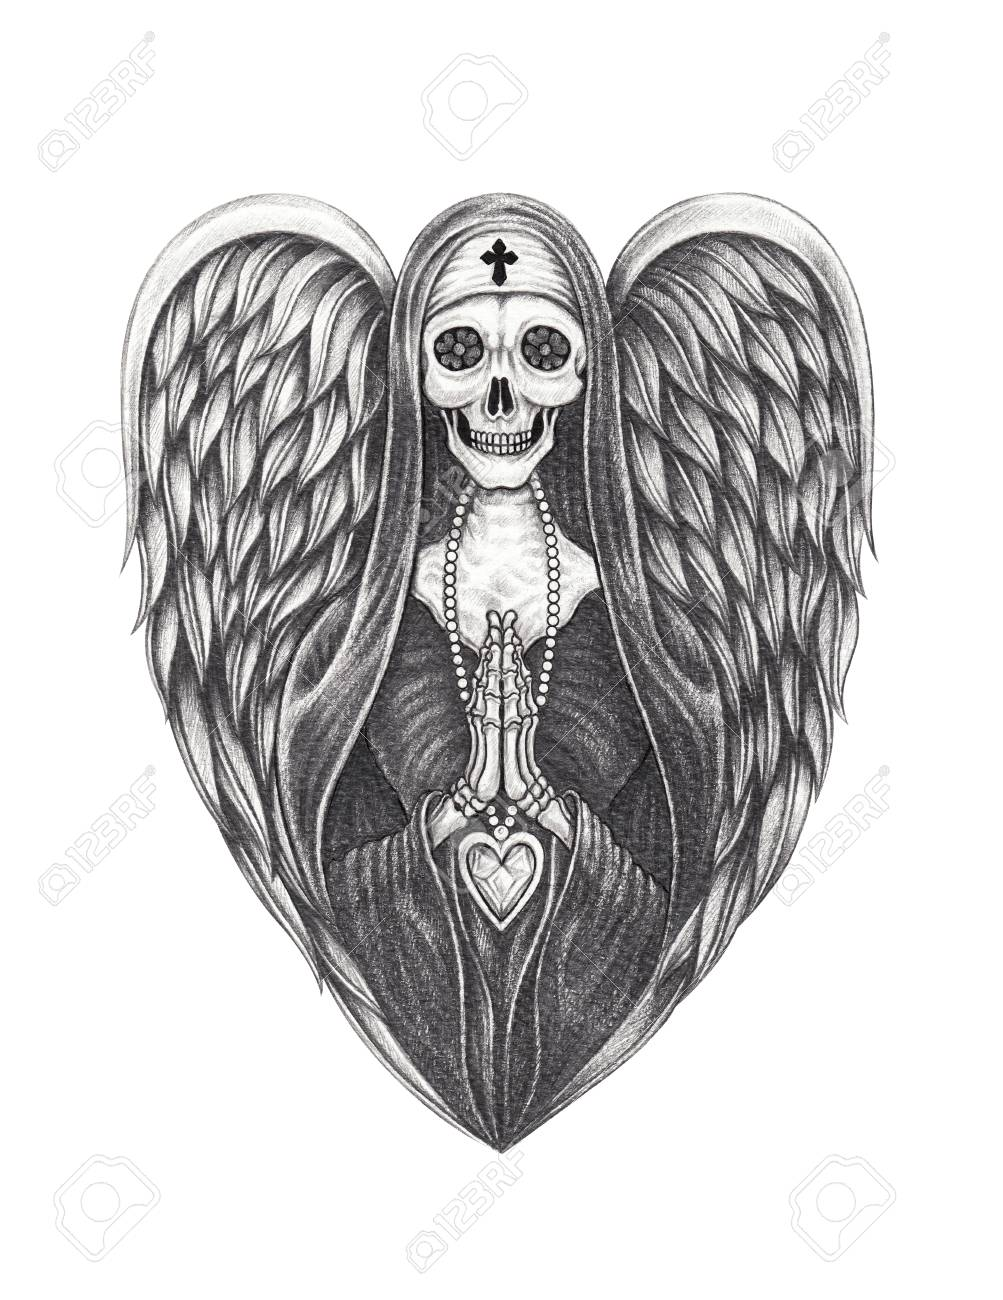 Art angel nun skull hand pencil drawing on paper stock photo 93020314